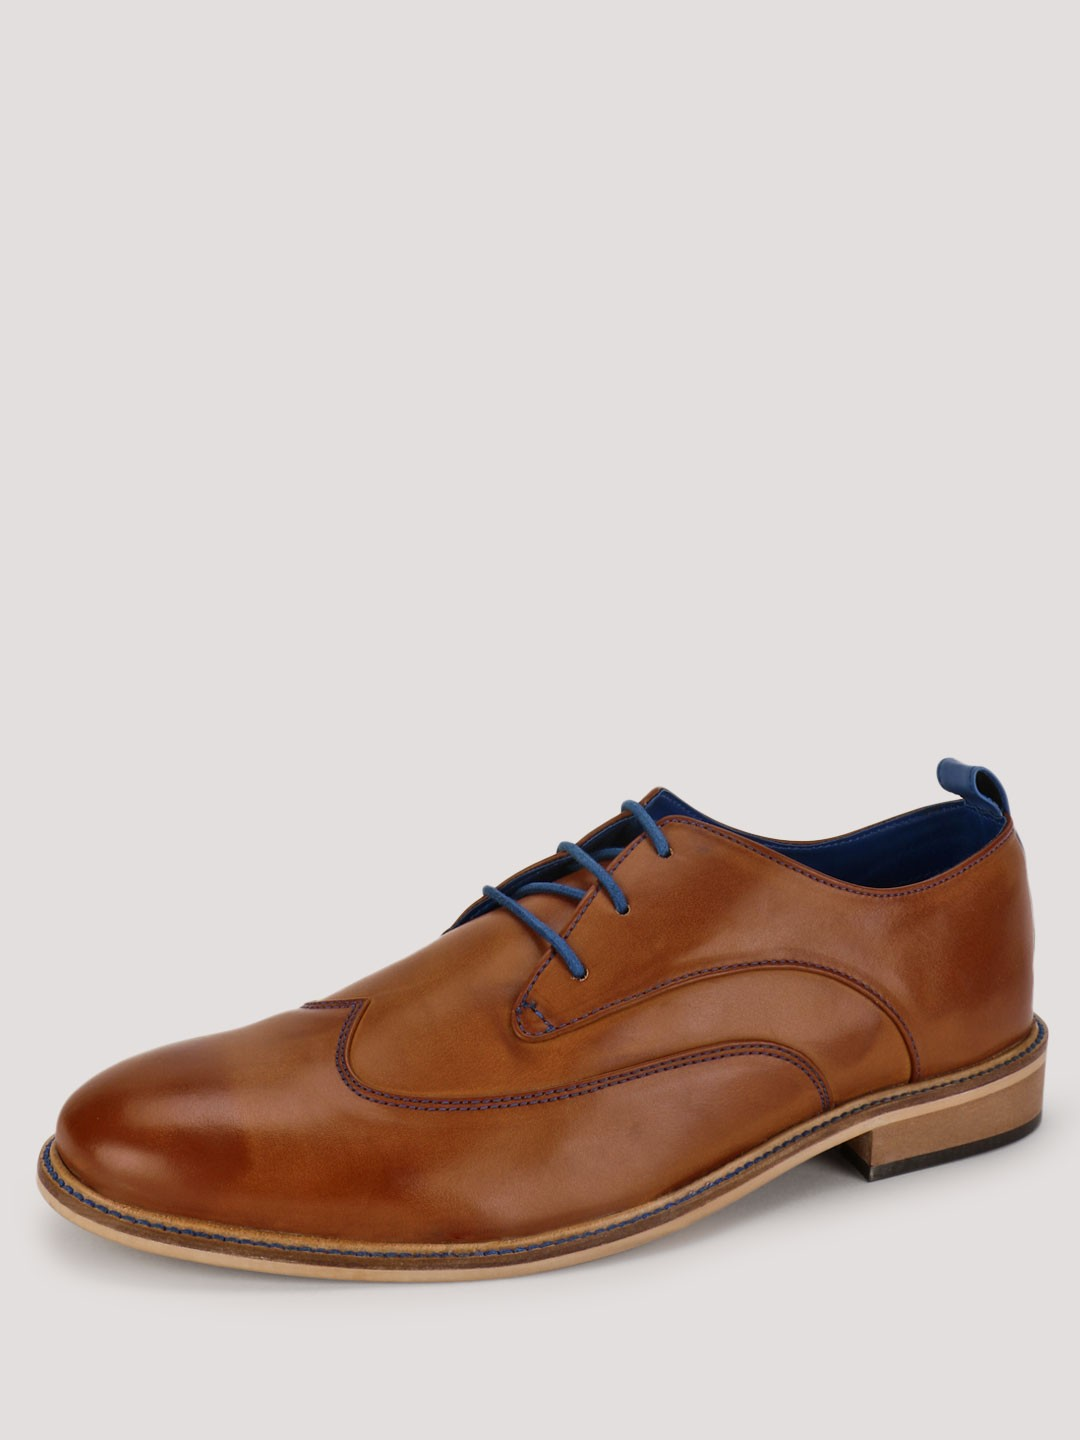 Brown Formal Lace Up Shoes India